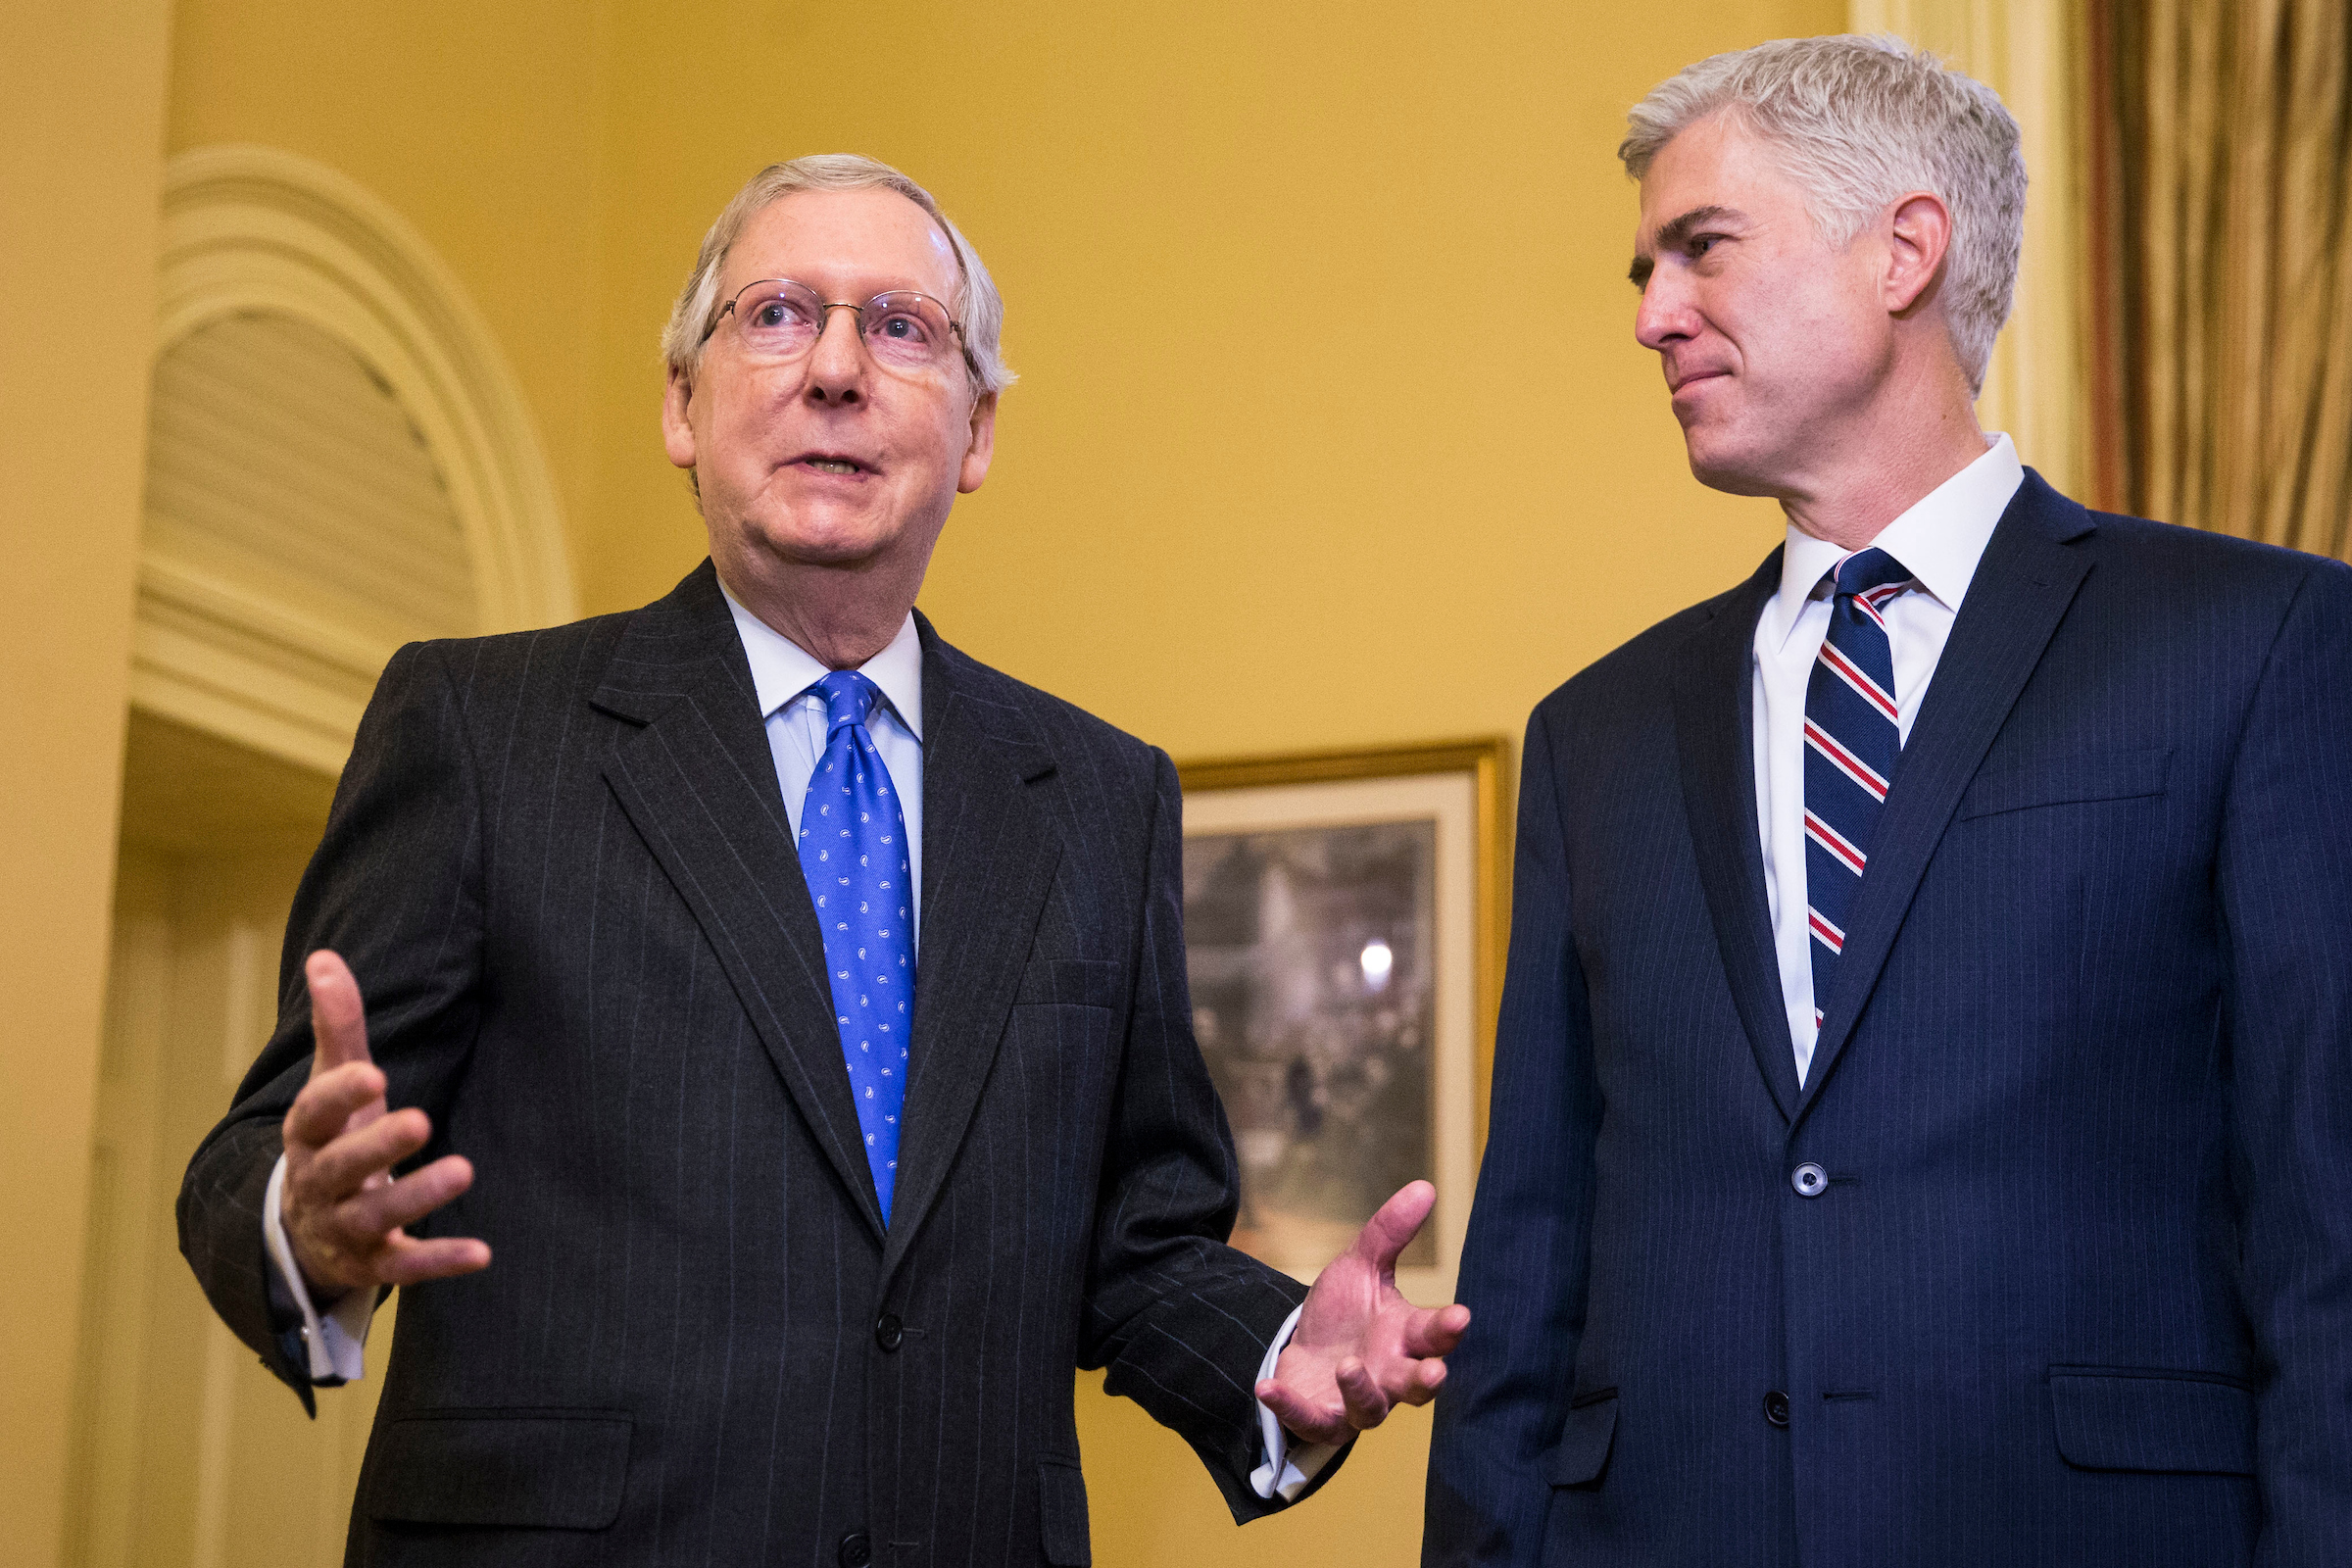 Senate Majority Leader Mitch McConnell of Kentucky, speaks alongside Supreme Court Nominee Judge Neil Gorsuch, on Capitol Hill, in Washington, Feb. 1, 2017. (Al Drago/Pool/The New York Times)